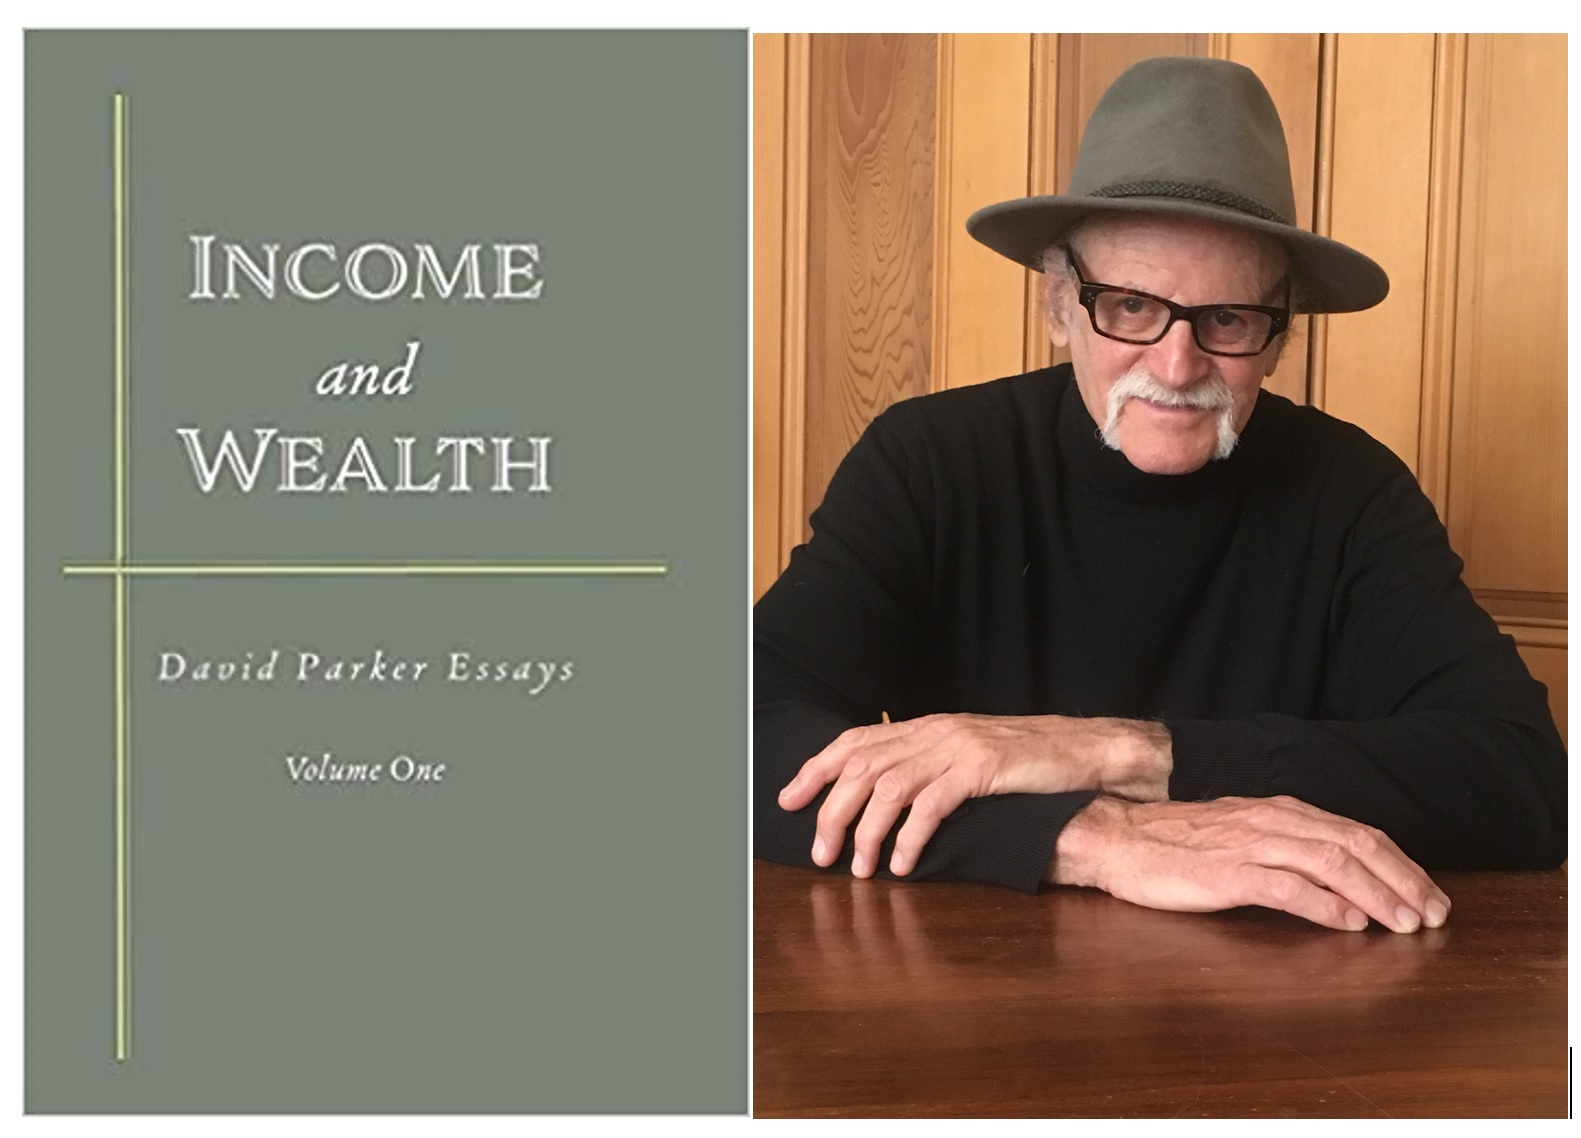 College Press Releases San Francisco Thought Leader Shares the Results of His Scholarly Inquiry into Economic Principles That Create Wealth